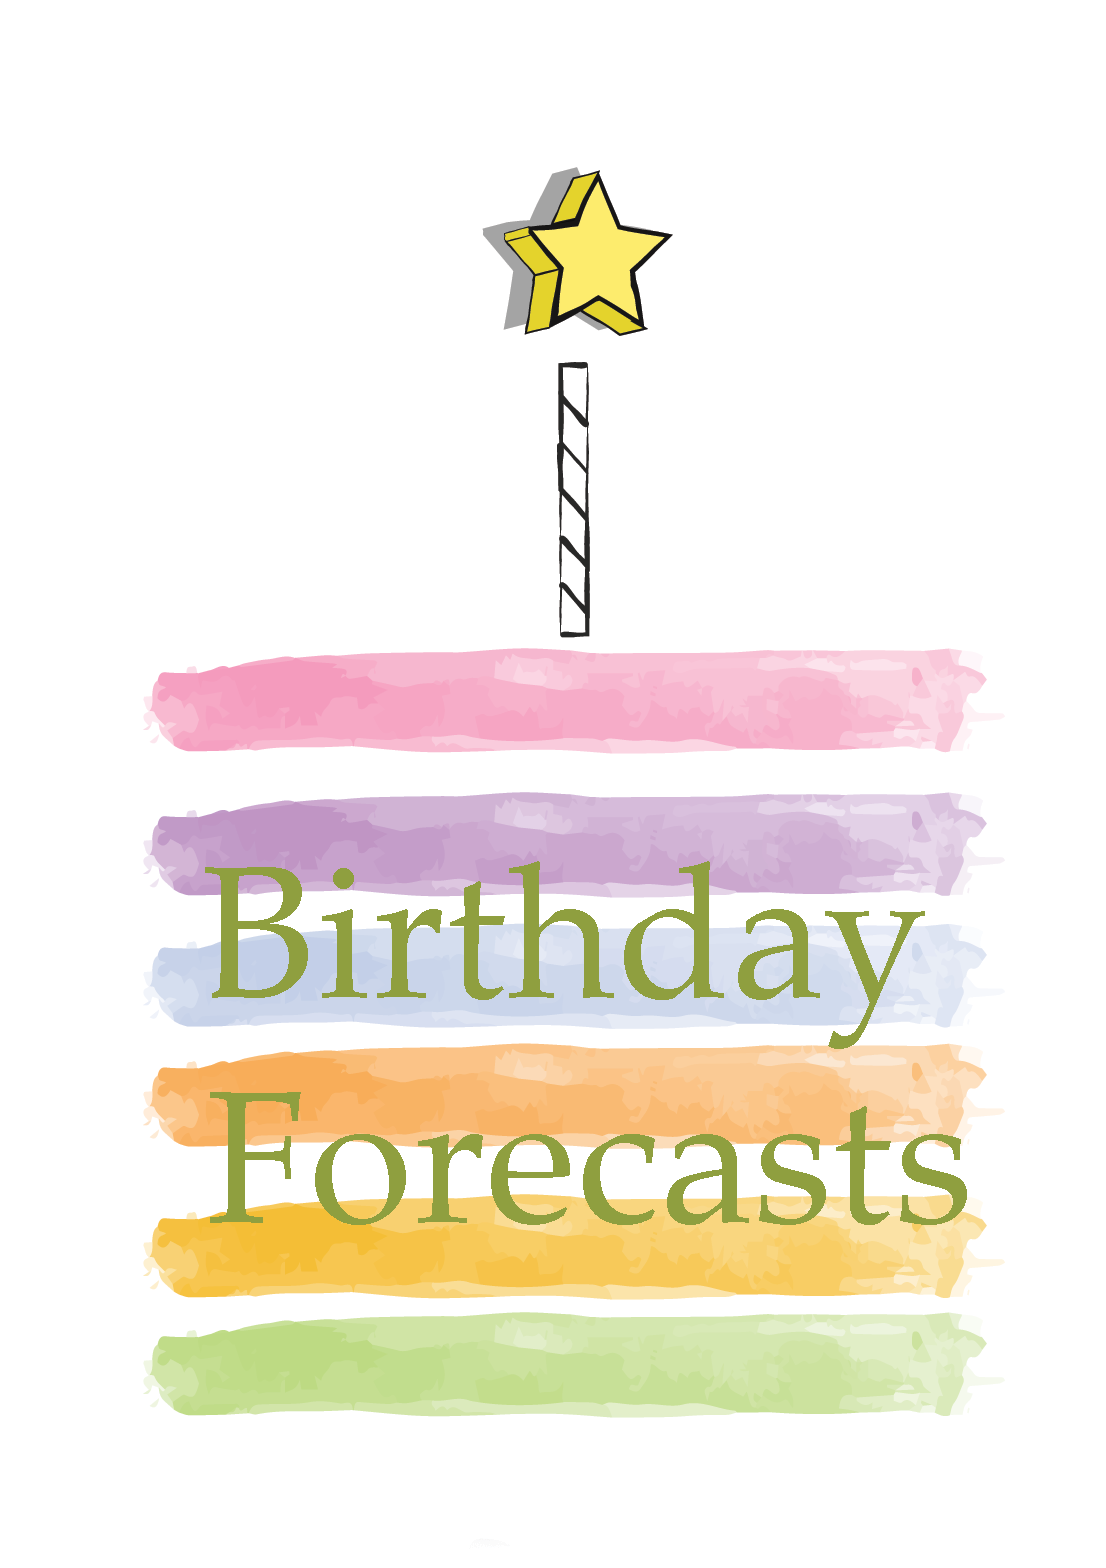 July 12222 Horoscope: Predictions for Libra